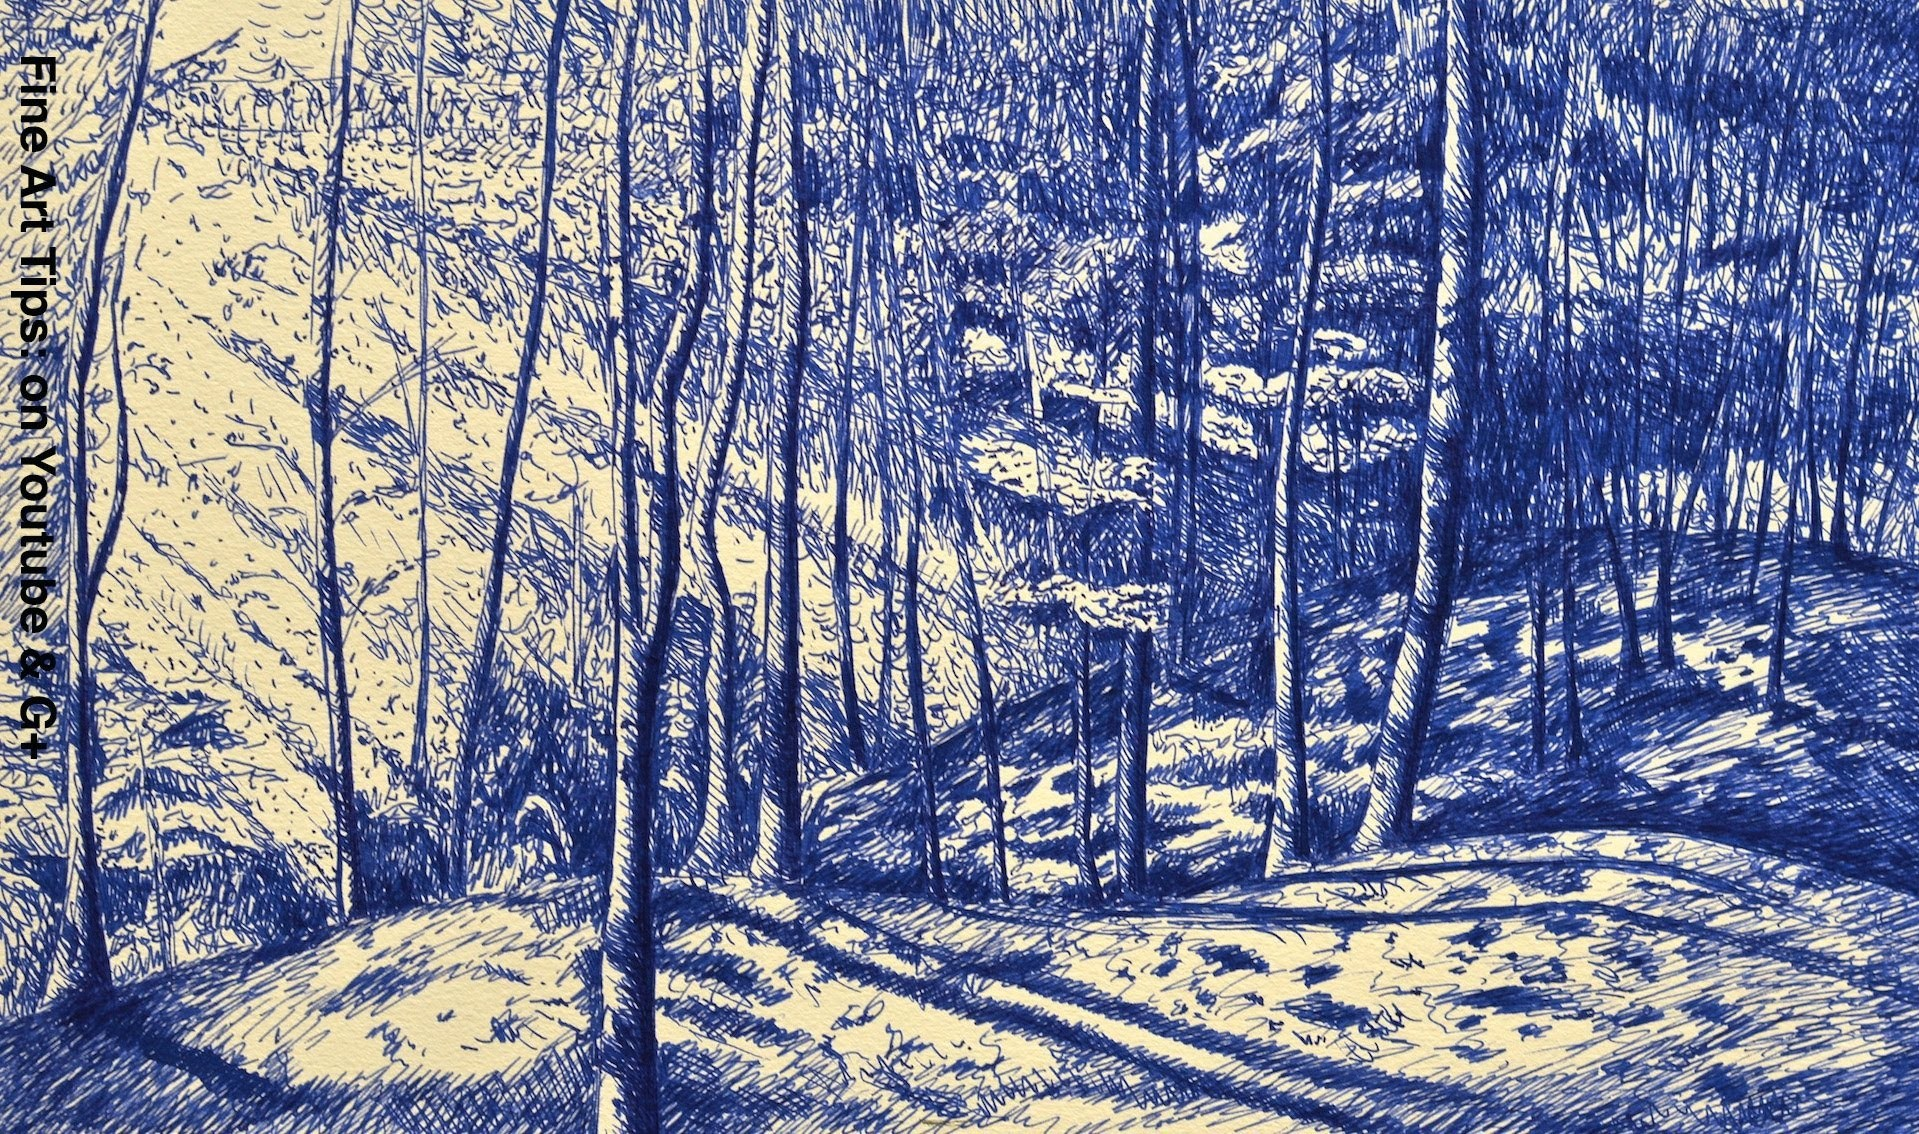 How to Draw a Forest With Fountain Pen